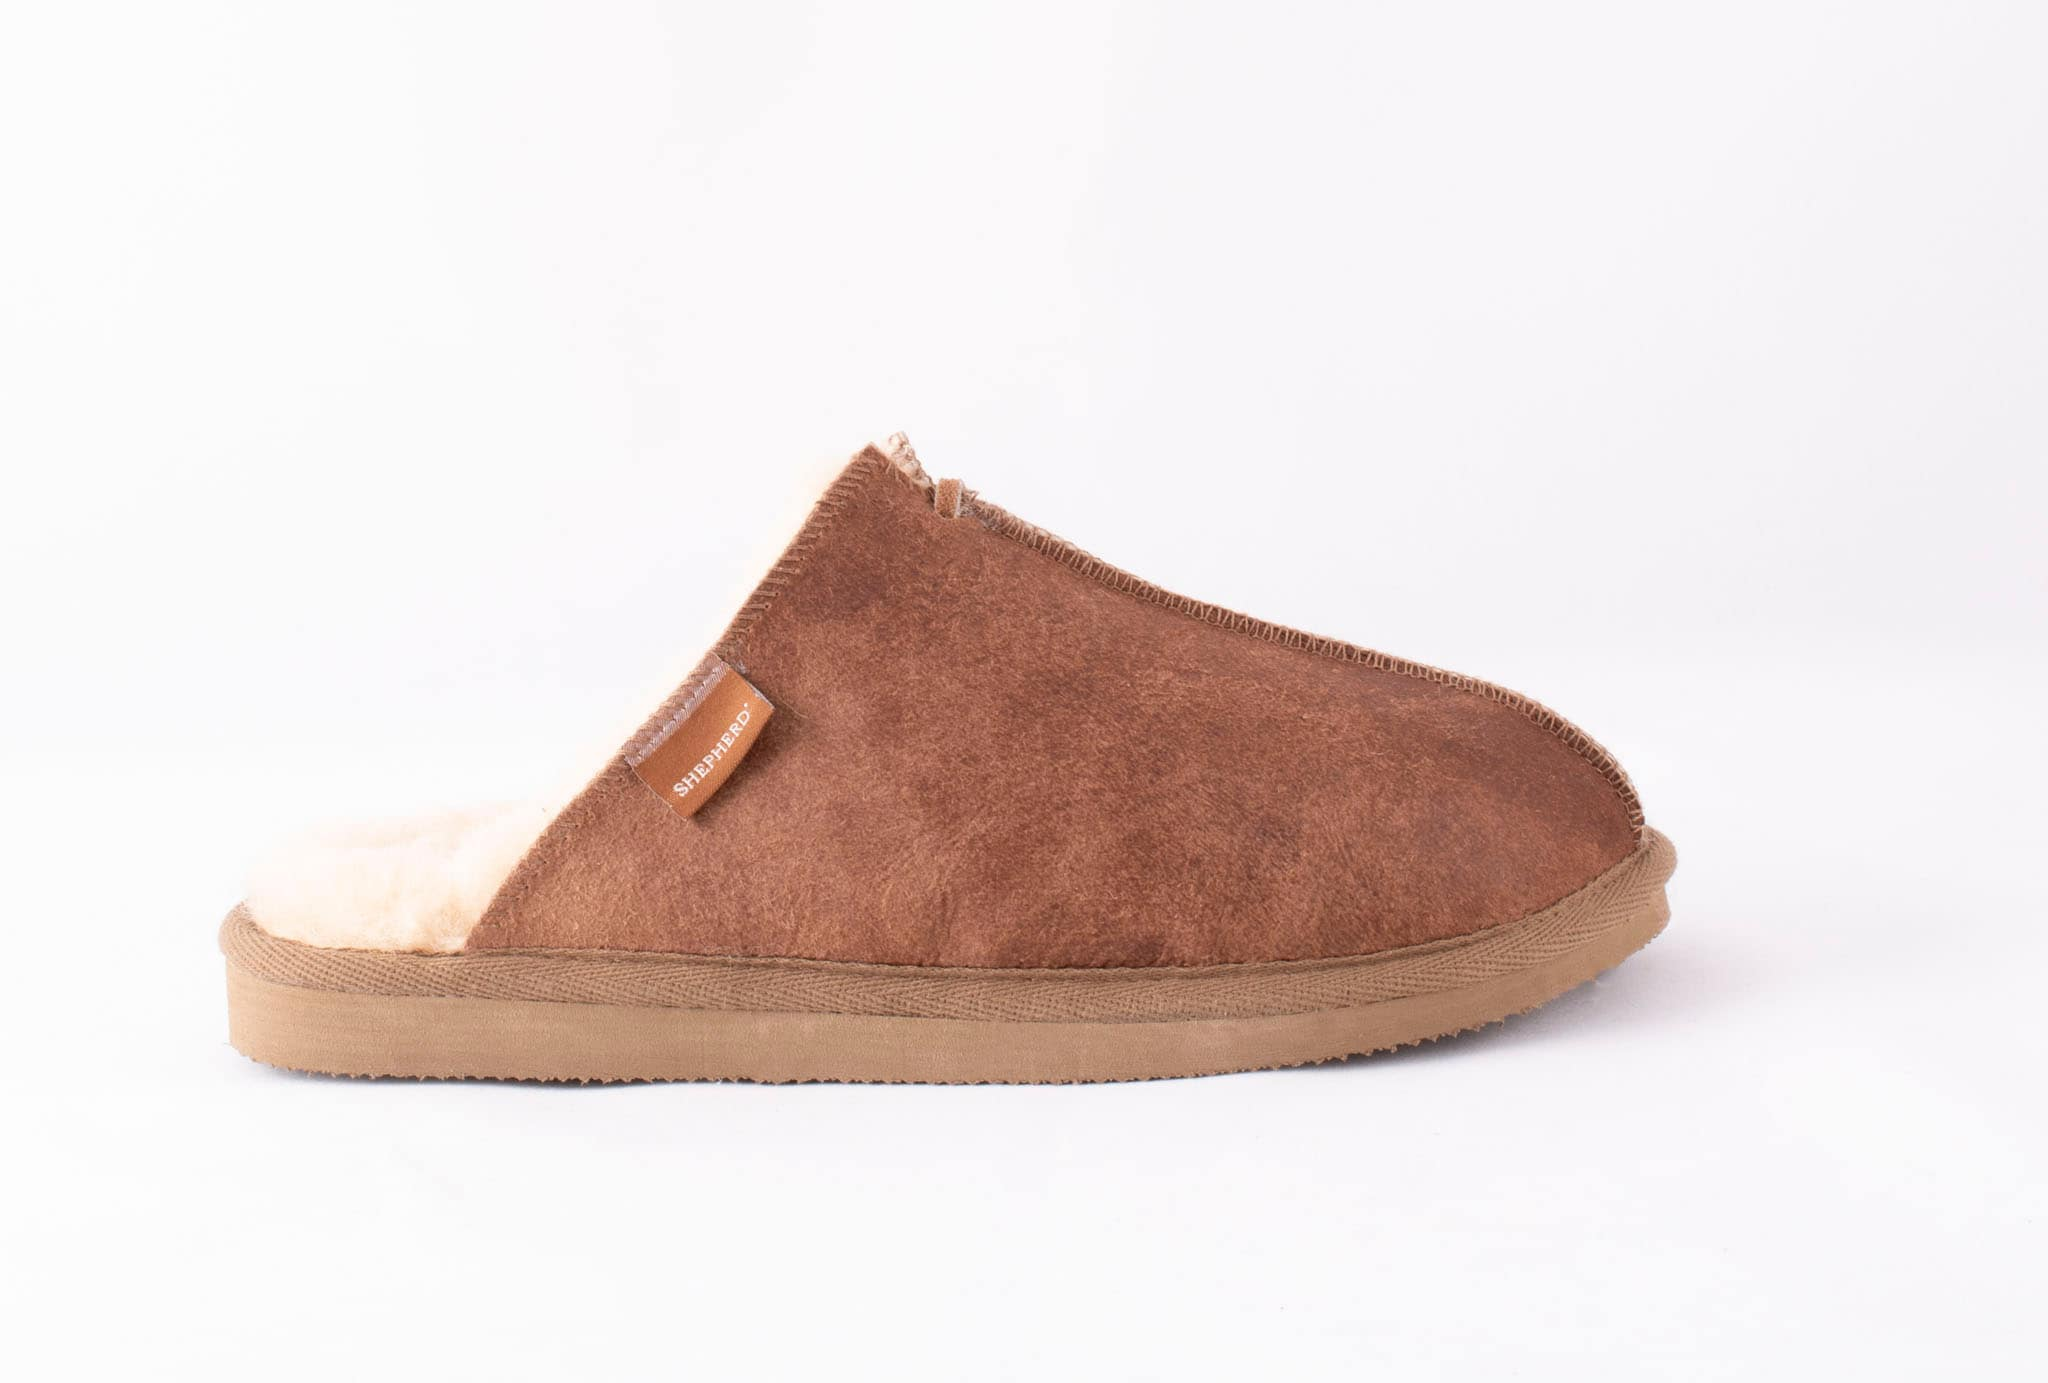 Karla sheepskin slippers